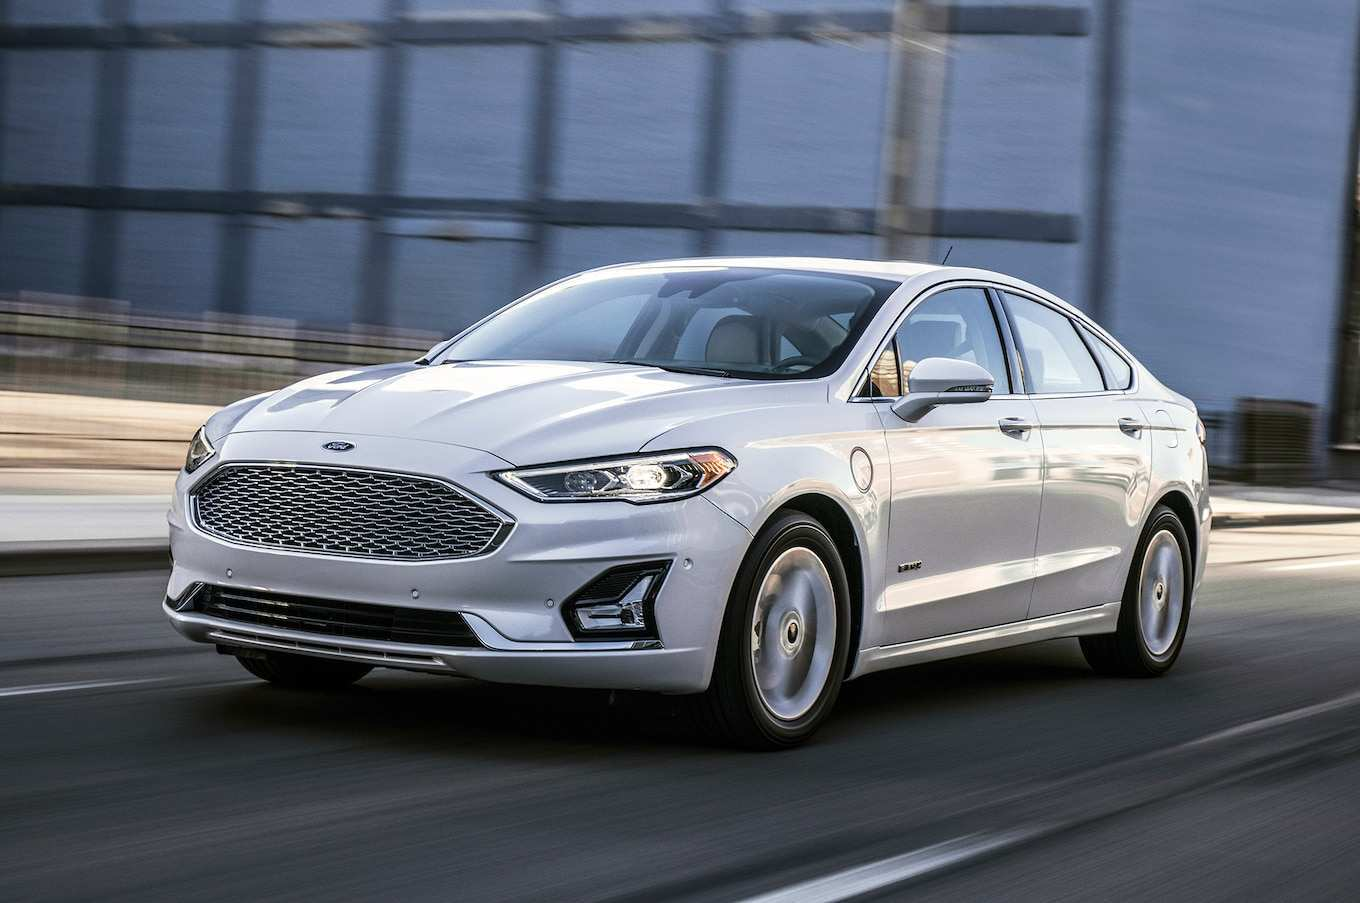 53 Best Review 2019 Ford Hybrid Cars Engine by 2019 Ford Hybrid Cars